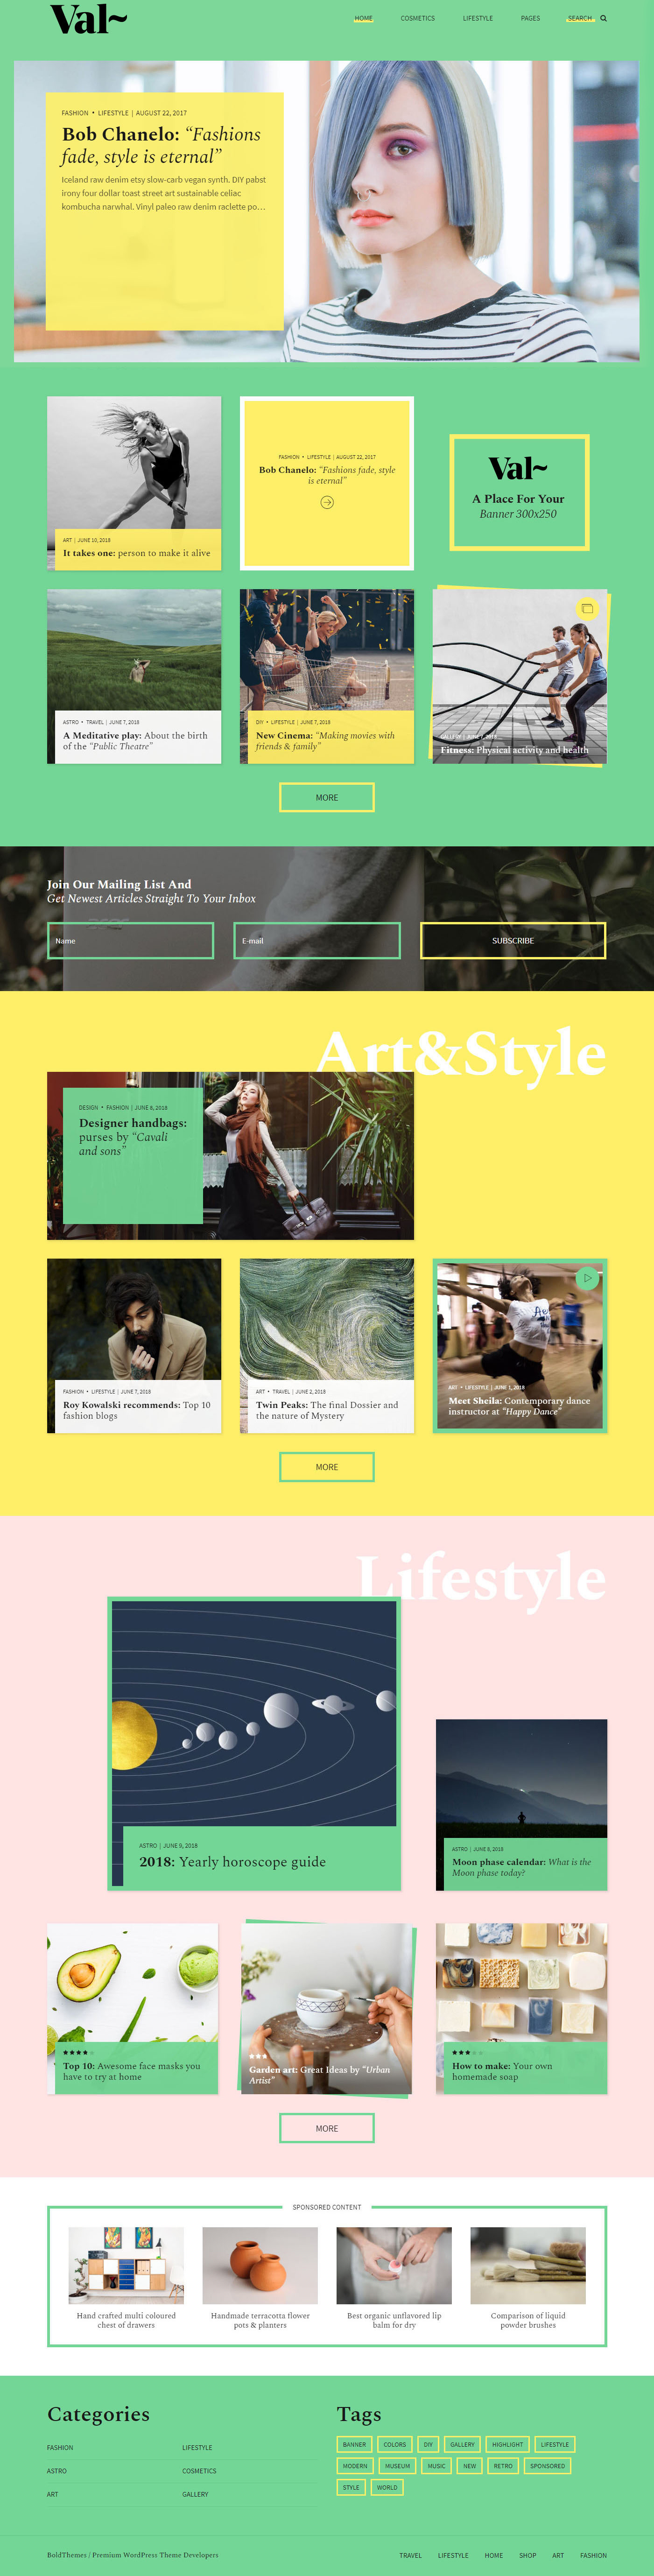 https://val.bold-themes.com/wp-content/uploads/2018/10/Green-demo-Main-home.jpg